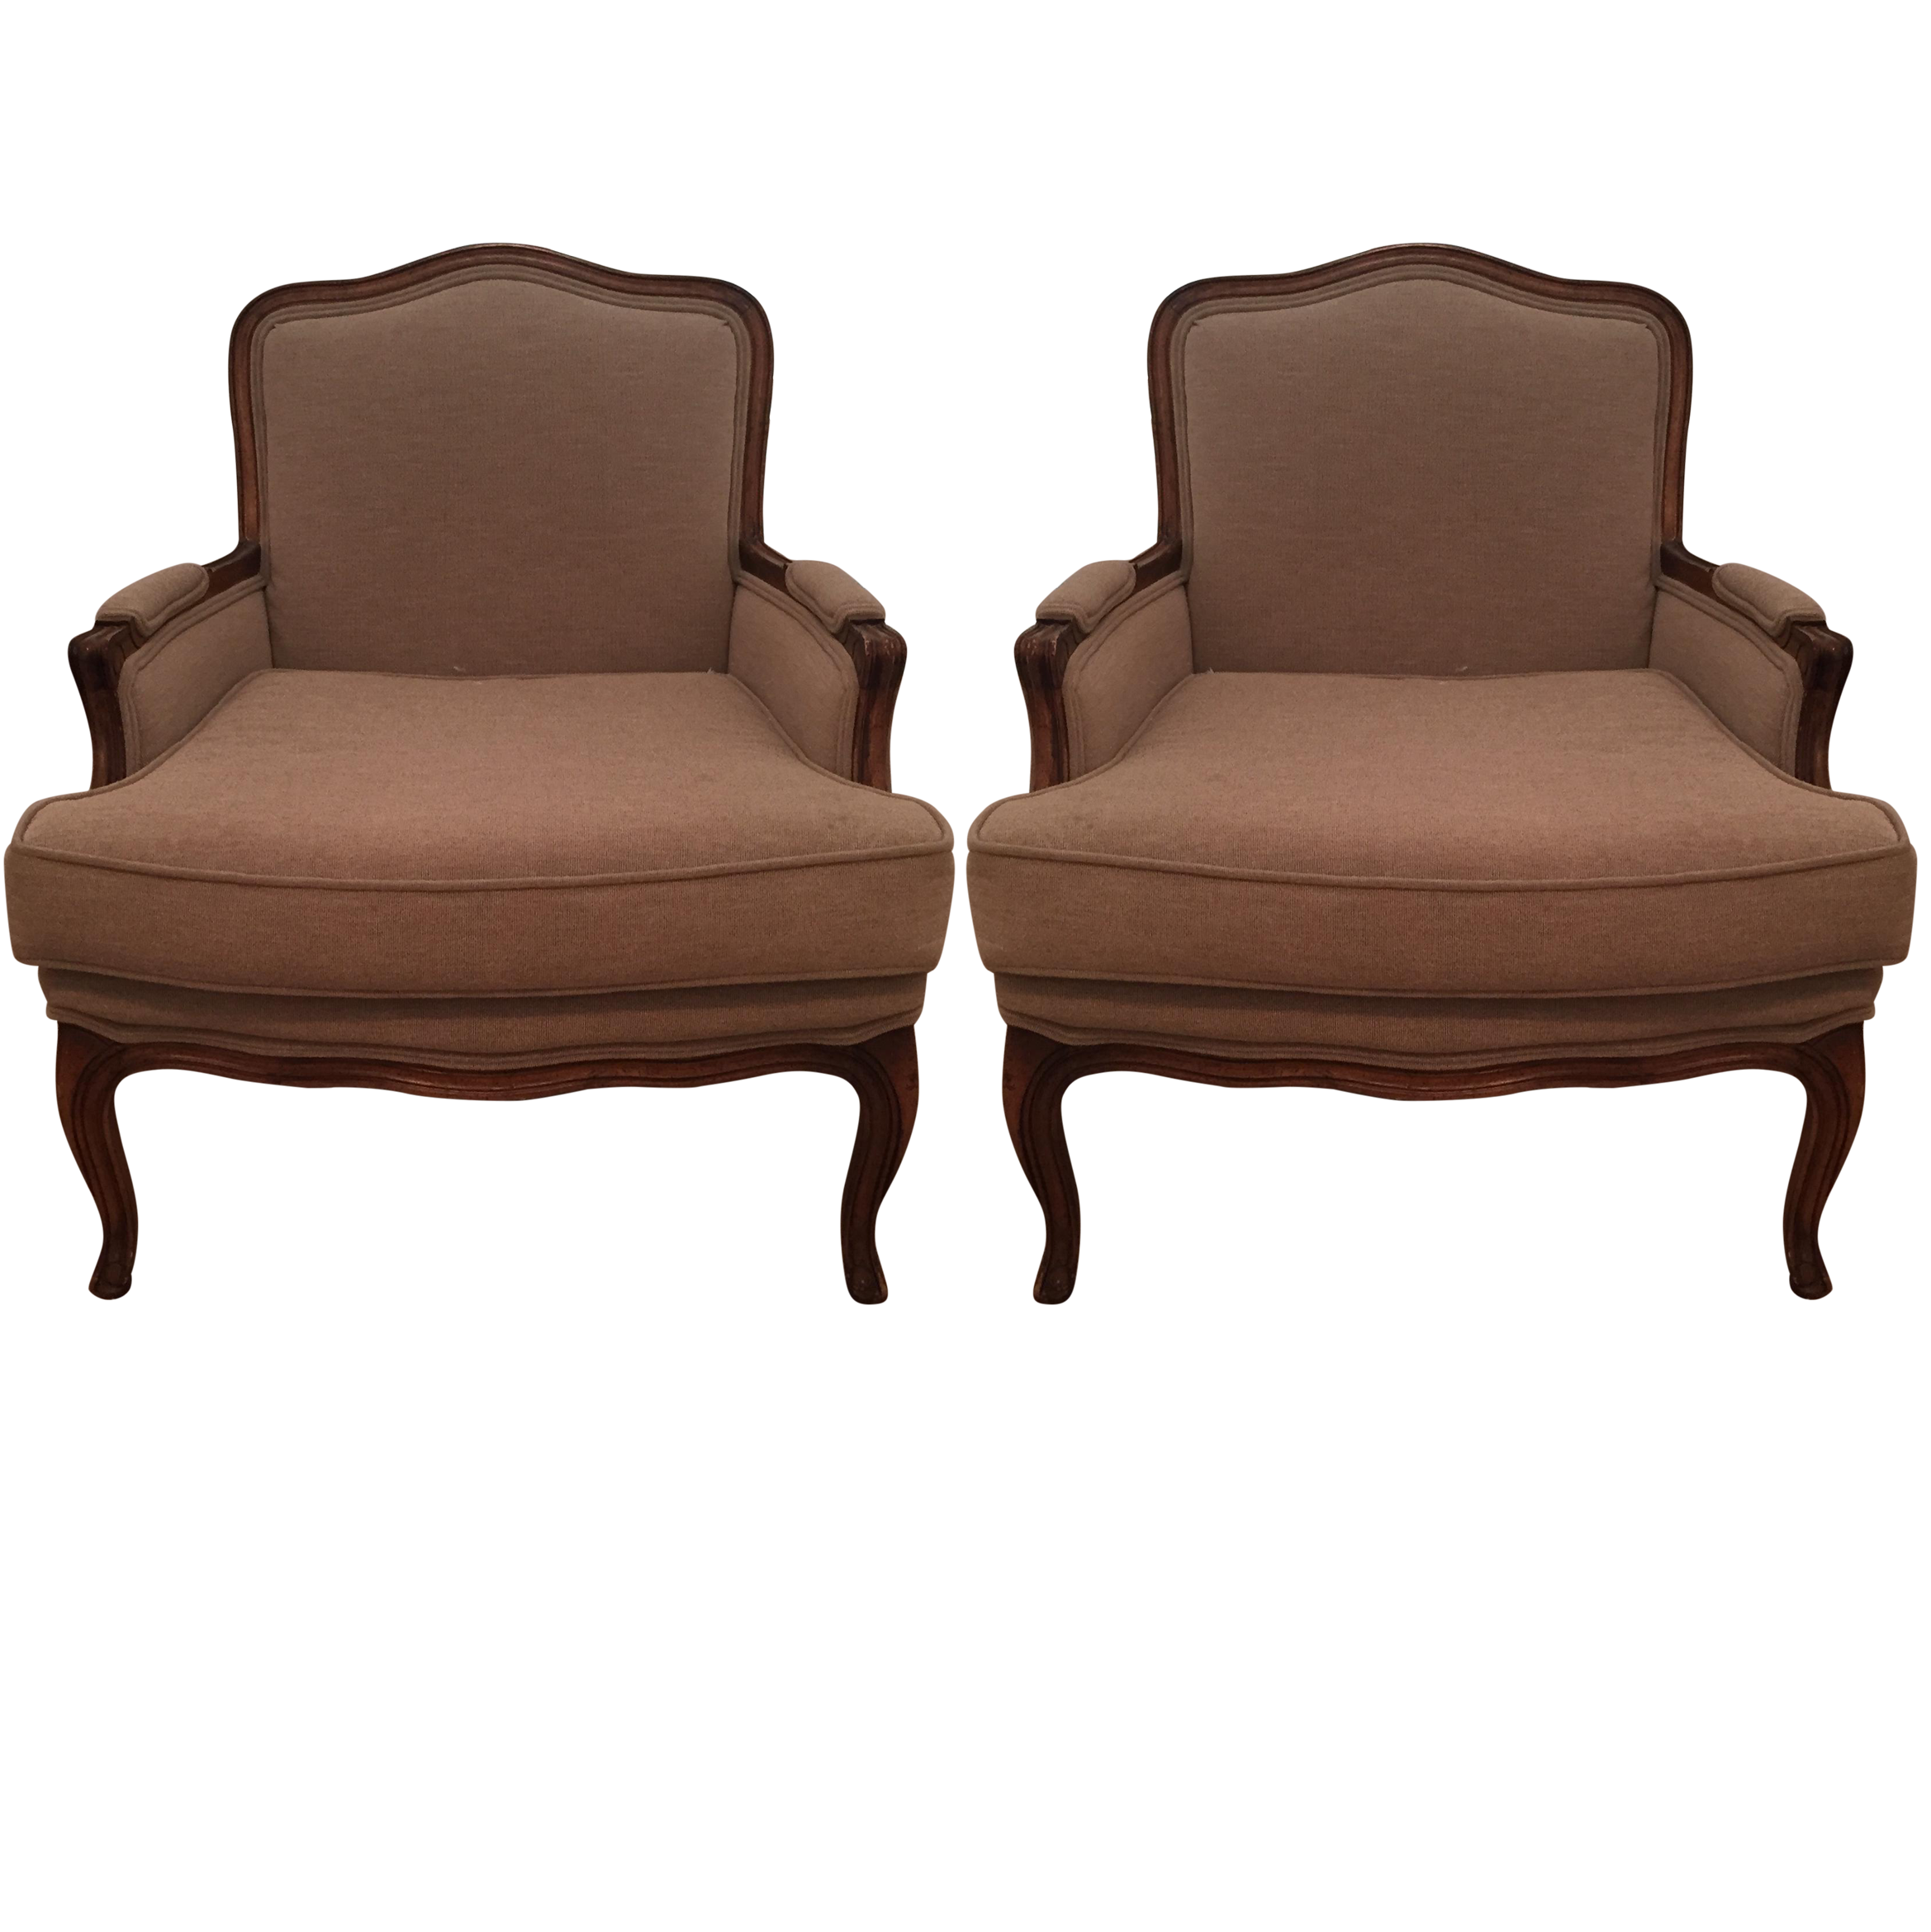 Upholstered bergere chairs pair chairish for Table bergere